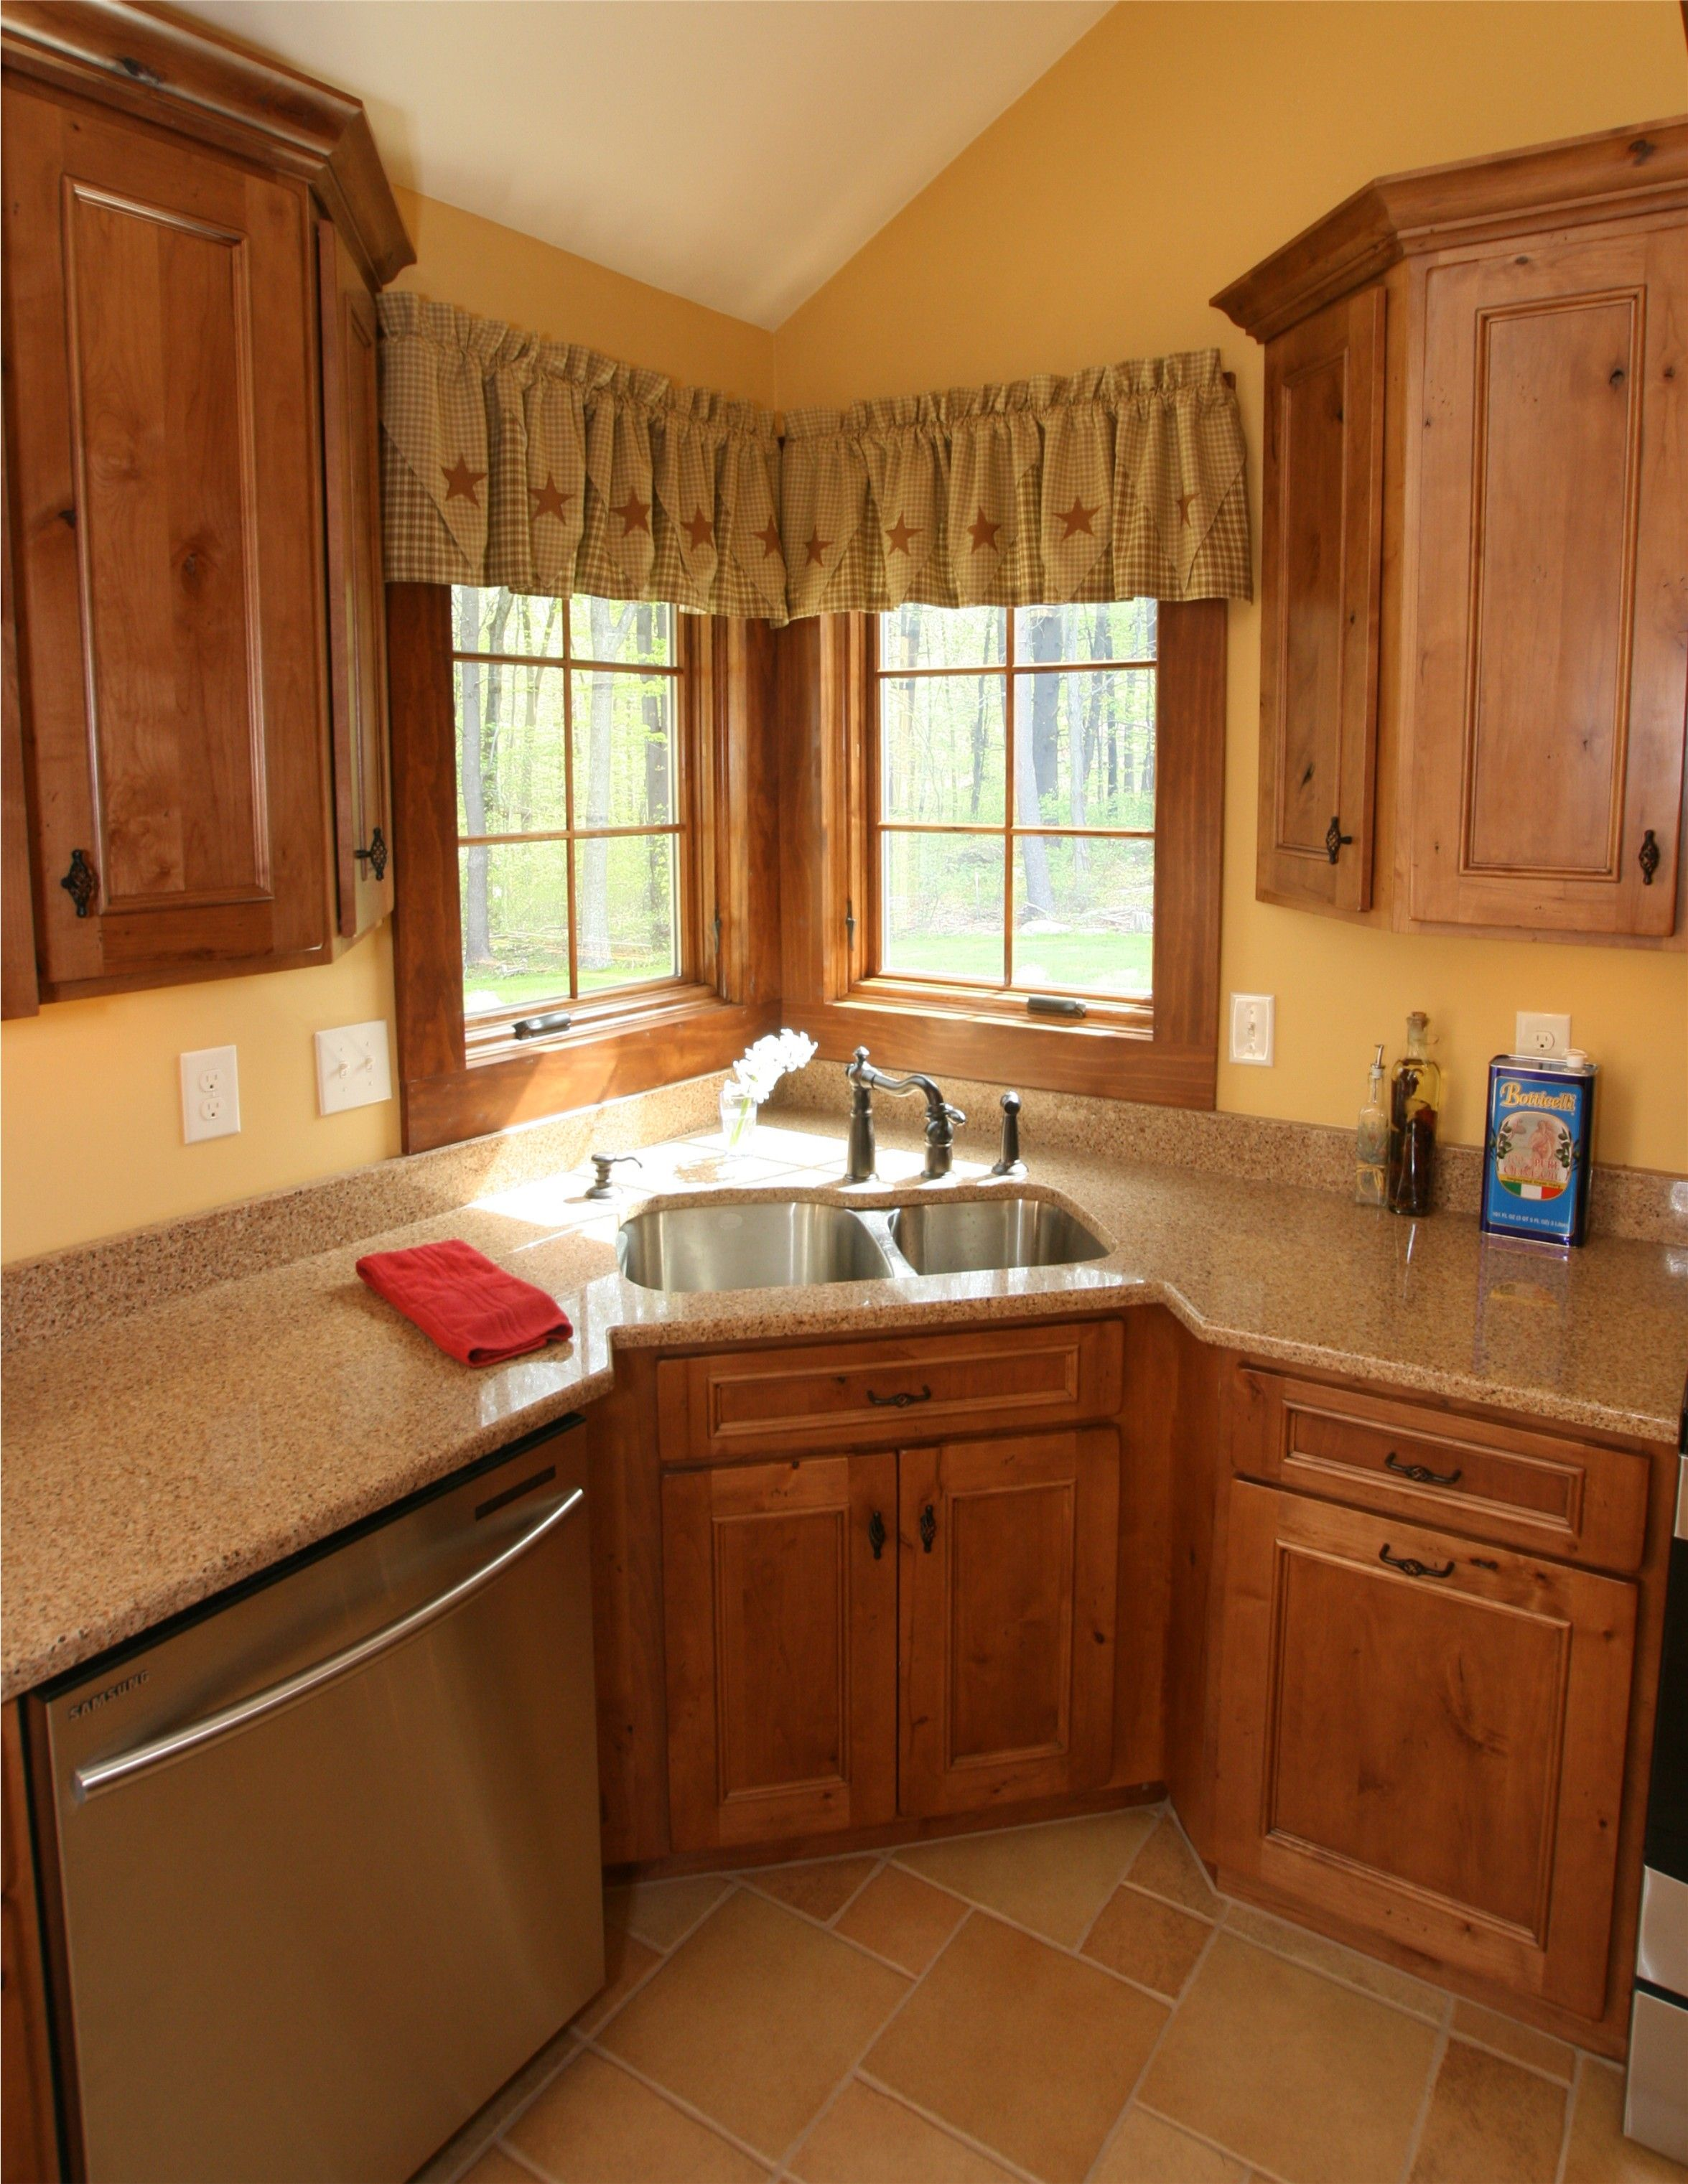 Showplace Kitchen Cabinets This Is A Beautiful Showplace Kitchen Featuring Our Rustic